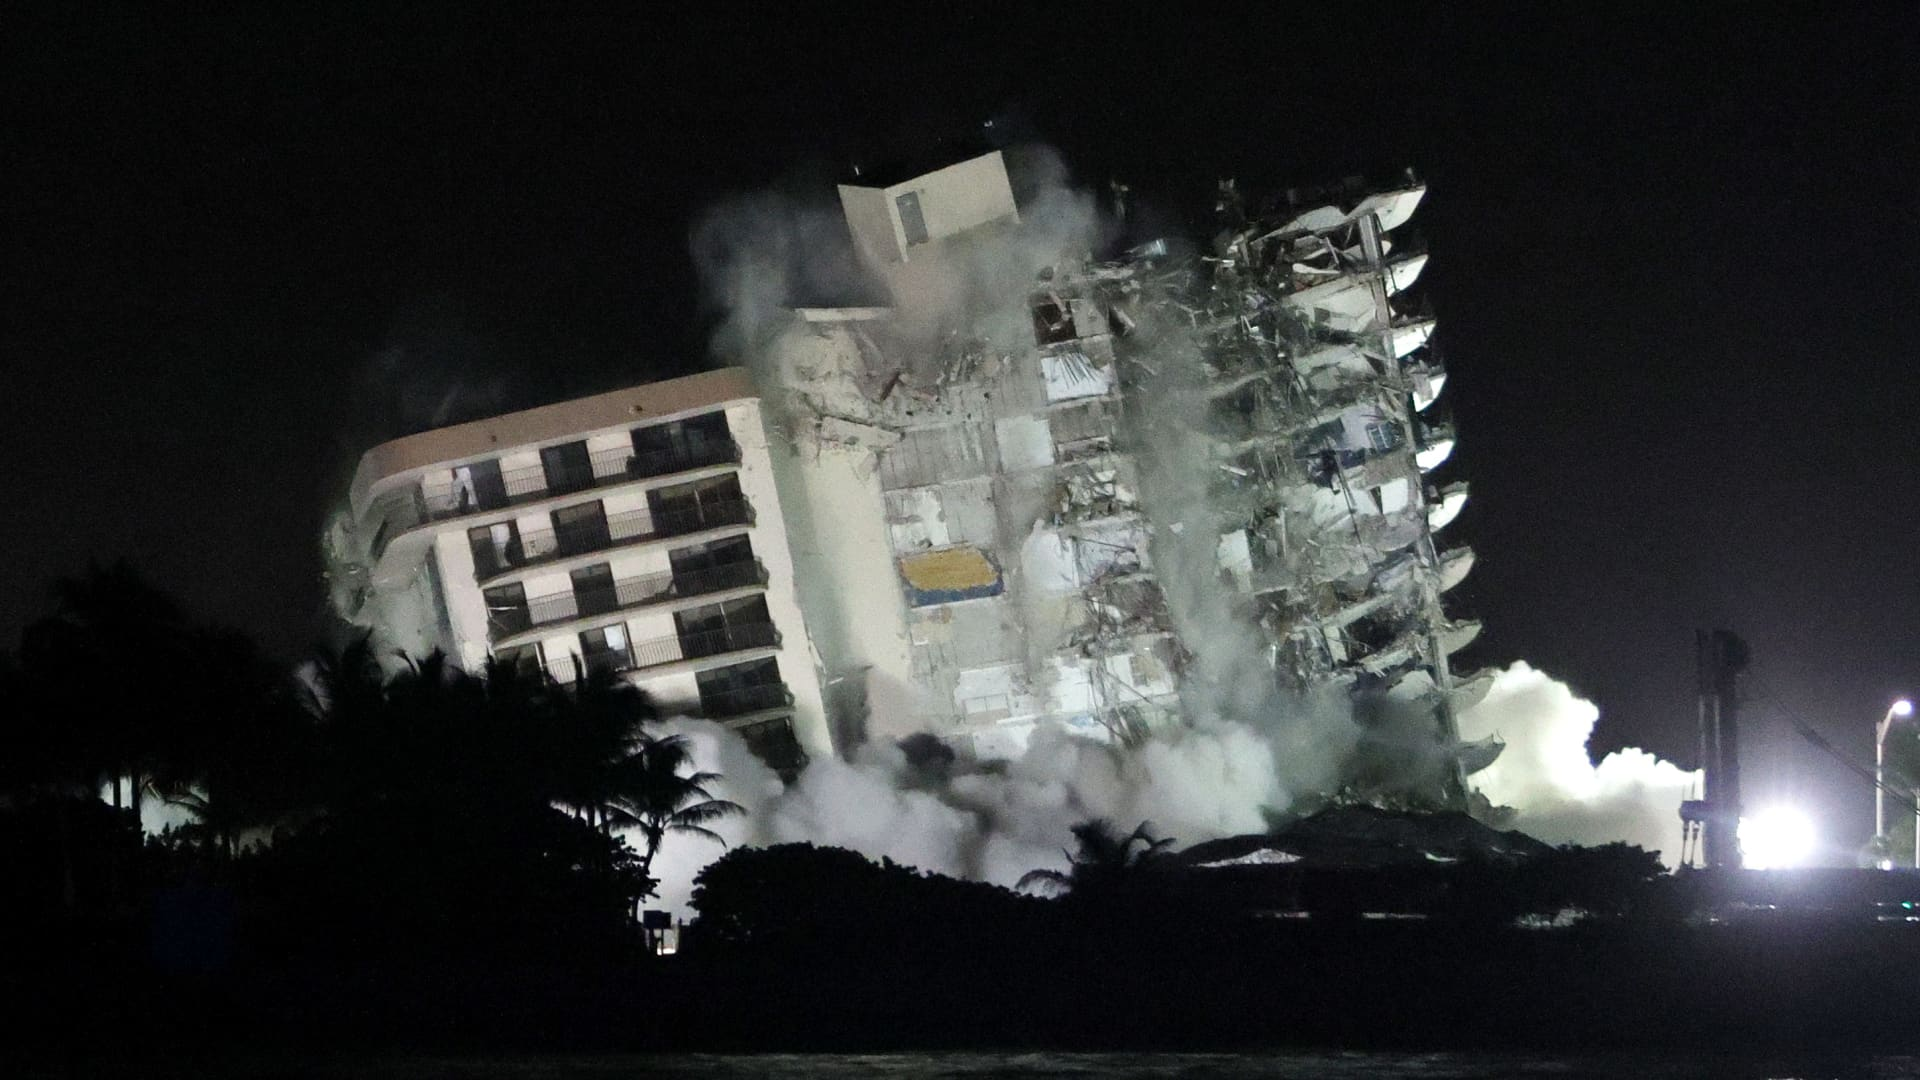 The remaining part of the partially collapsed 12-story Champlain Towers South condo building falls in a controlled demolition on July 4, 2021 in Surfside, Florida.